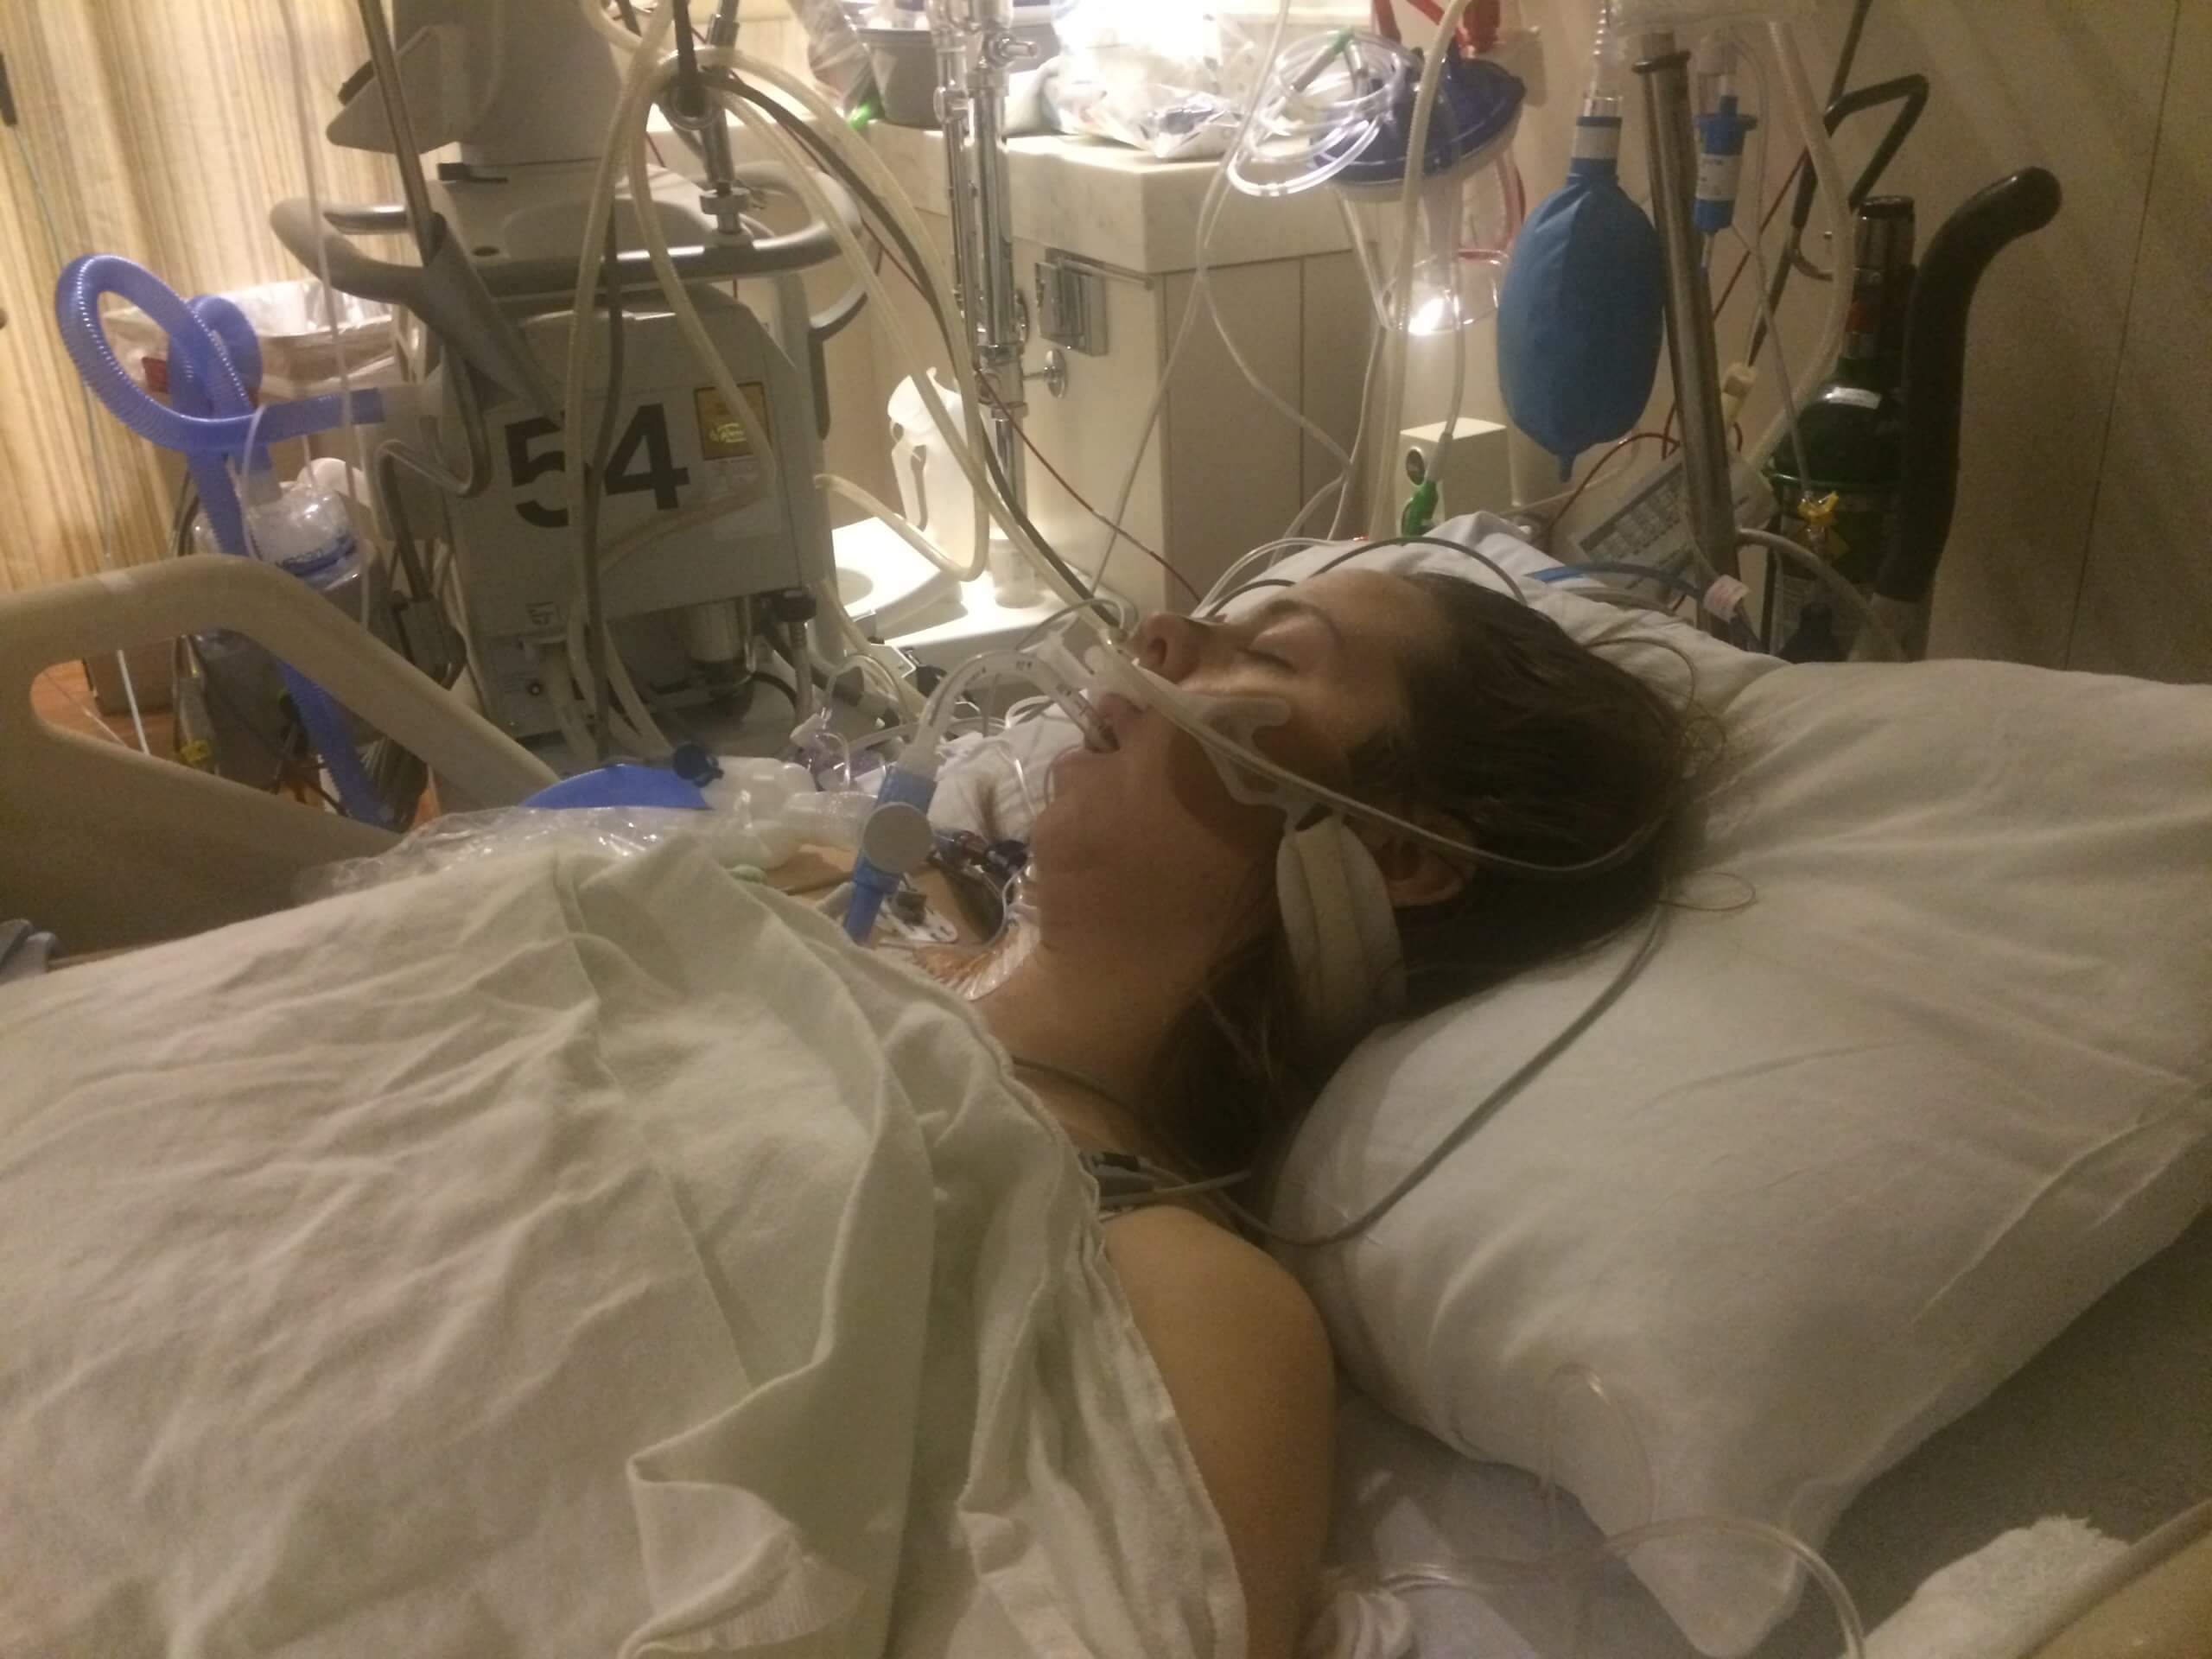 Ten days after a drunk driver nearly killed Erin Rollins, she lay close to death again.